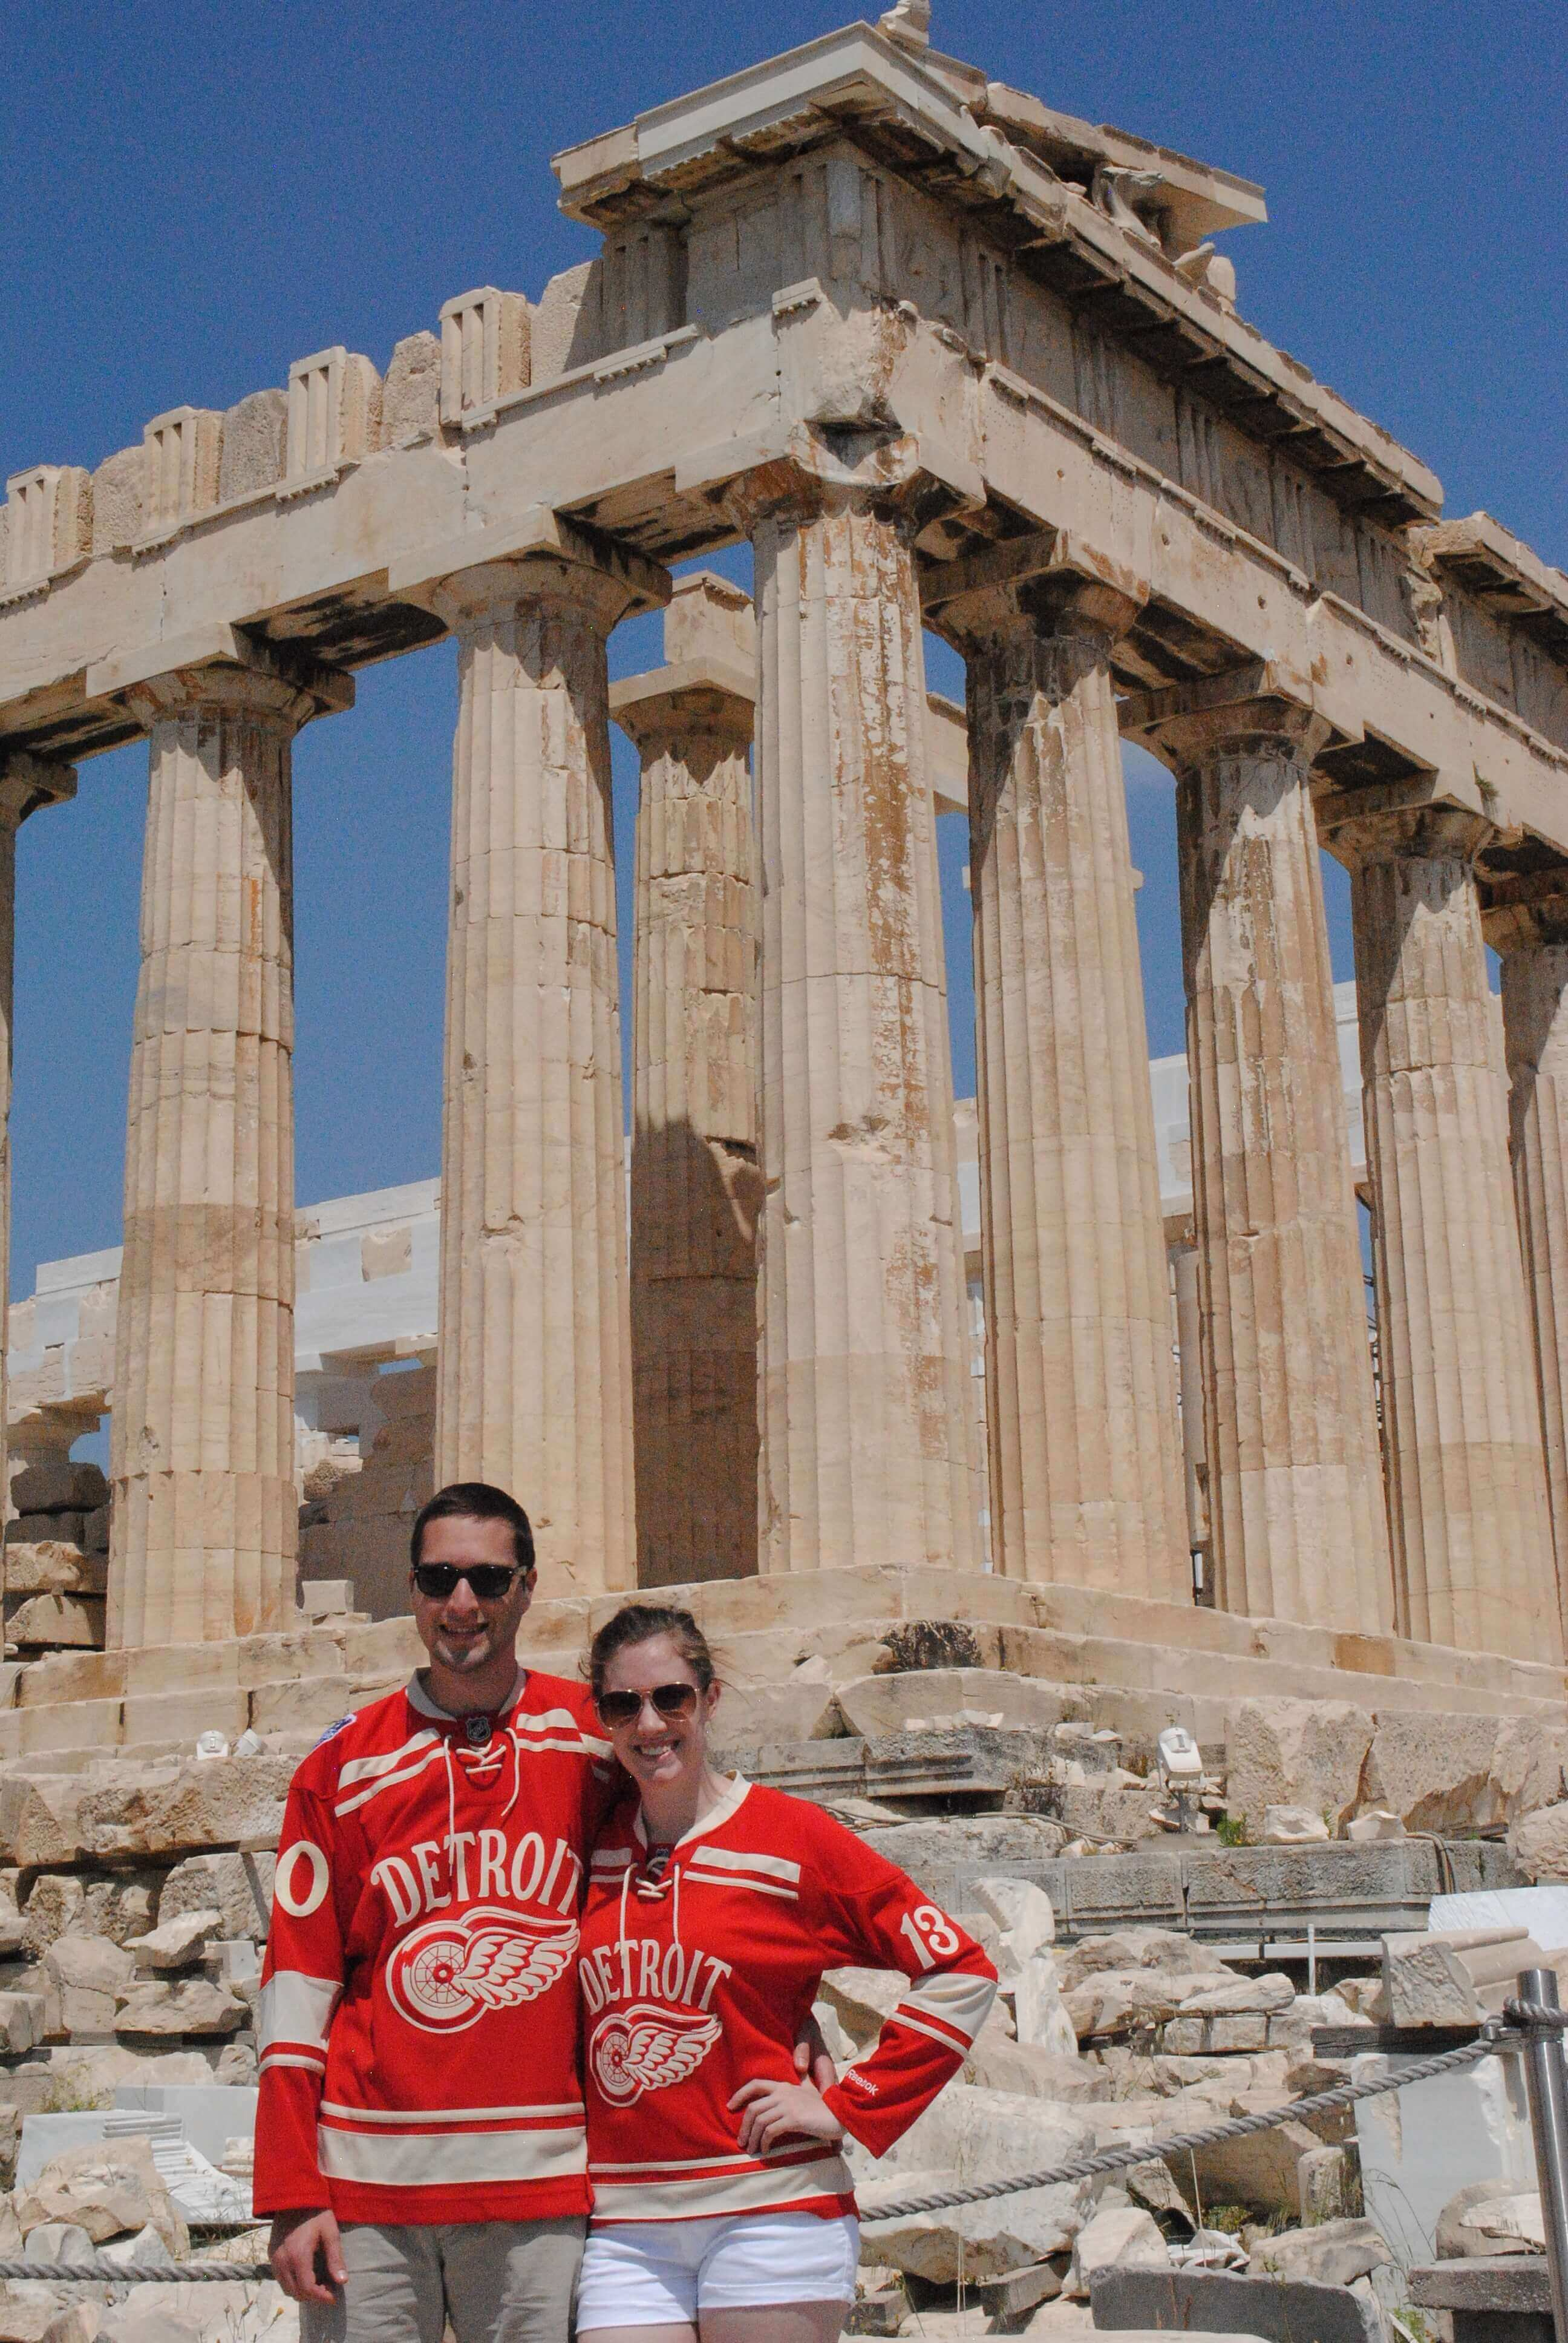 The Non-Scaffolding Side of the Parthenon! Yes, we will be submitting this photo for Red Wings Fan of the Day.